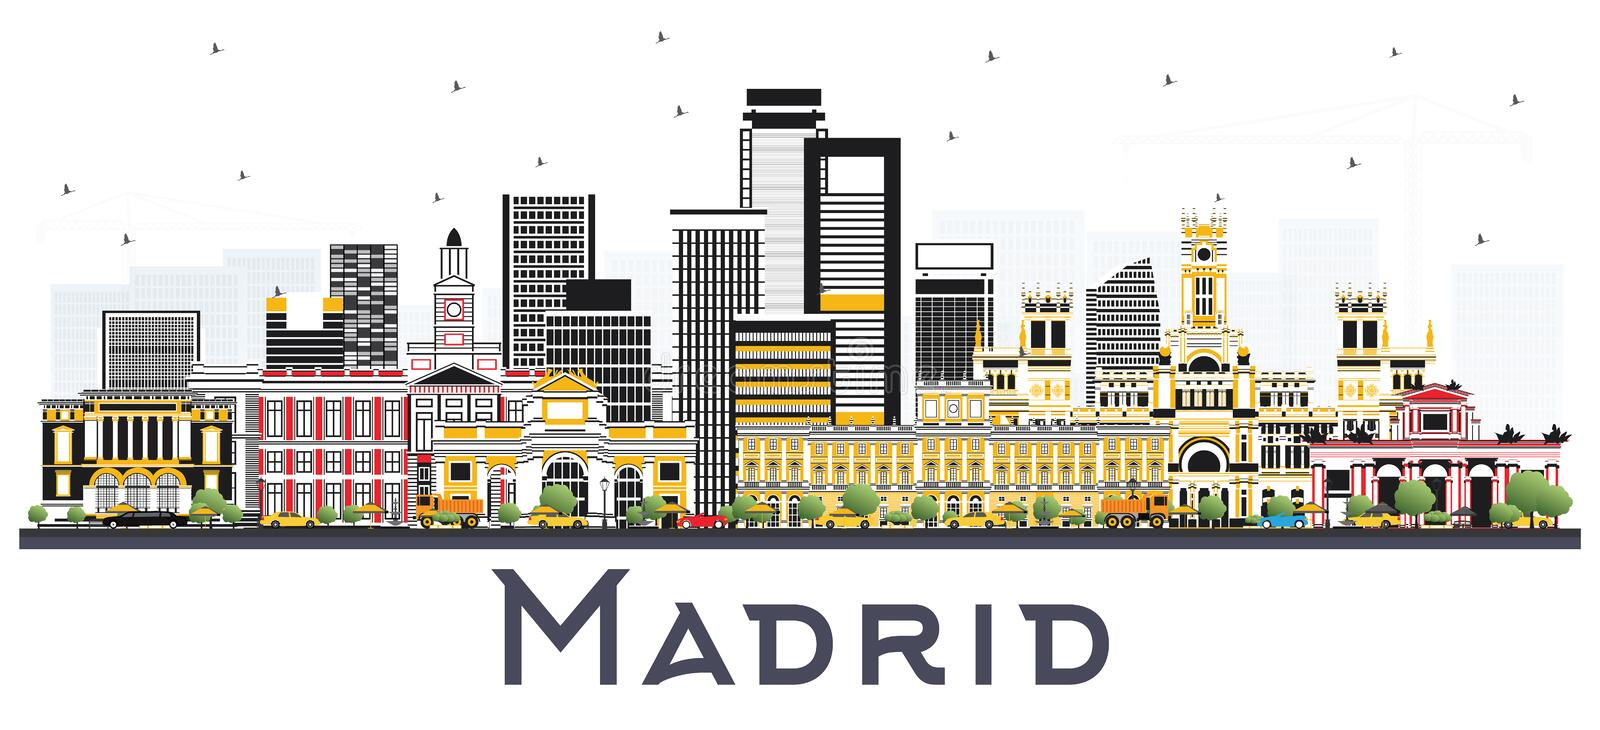 Madrid Spain Skyline with Gray Buildings Isolated on White. Background. Vector Illustration. Business Travel and Tourism Concept with Historic Architecture royalty free illustration